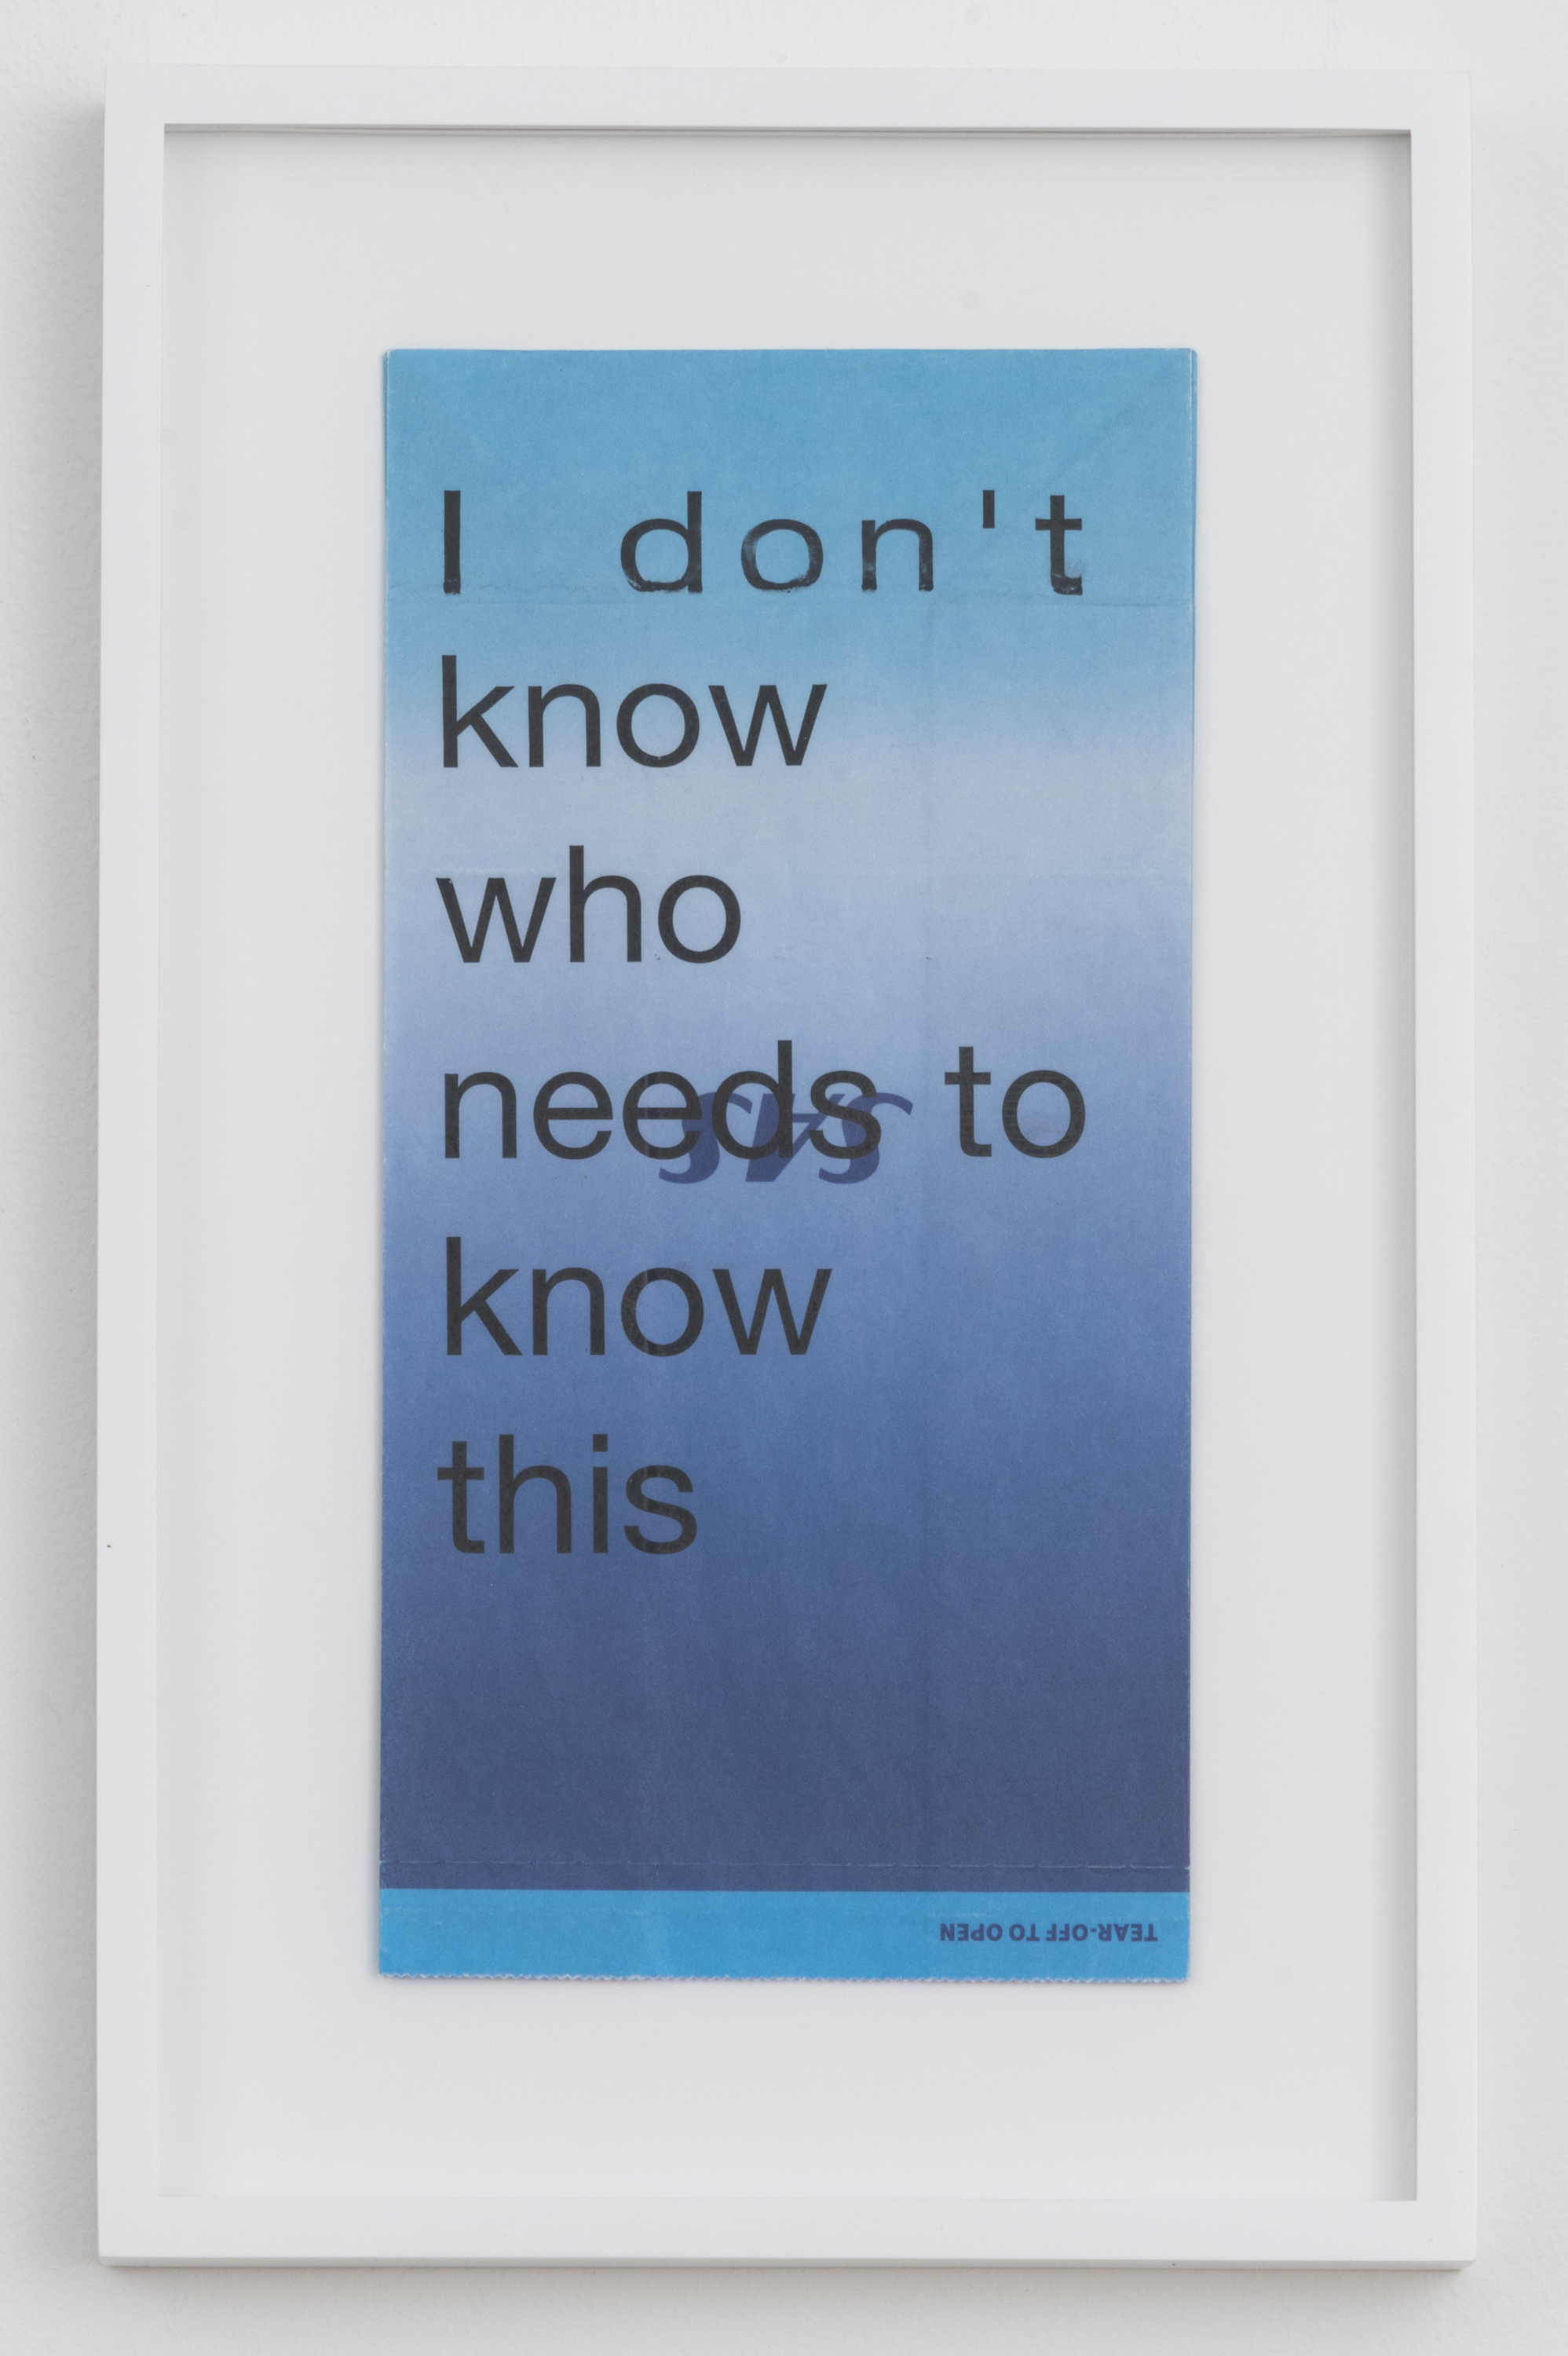 Cory Arcangel I don't know who needs to know this, 2020. Hewlett Packard home office Laserjet on found Scandinavian Airlines vomit bag. Paper: 10 x 5 inches (25.4 x 12.7 cm) Frame: 13 1/4 x 8 1/4 x 1 3/8 inches (33.7 x 21 x 3.5 cm) Courtesy the artist and Greene Naftali, New York